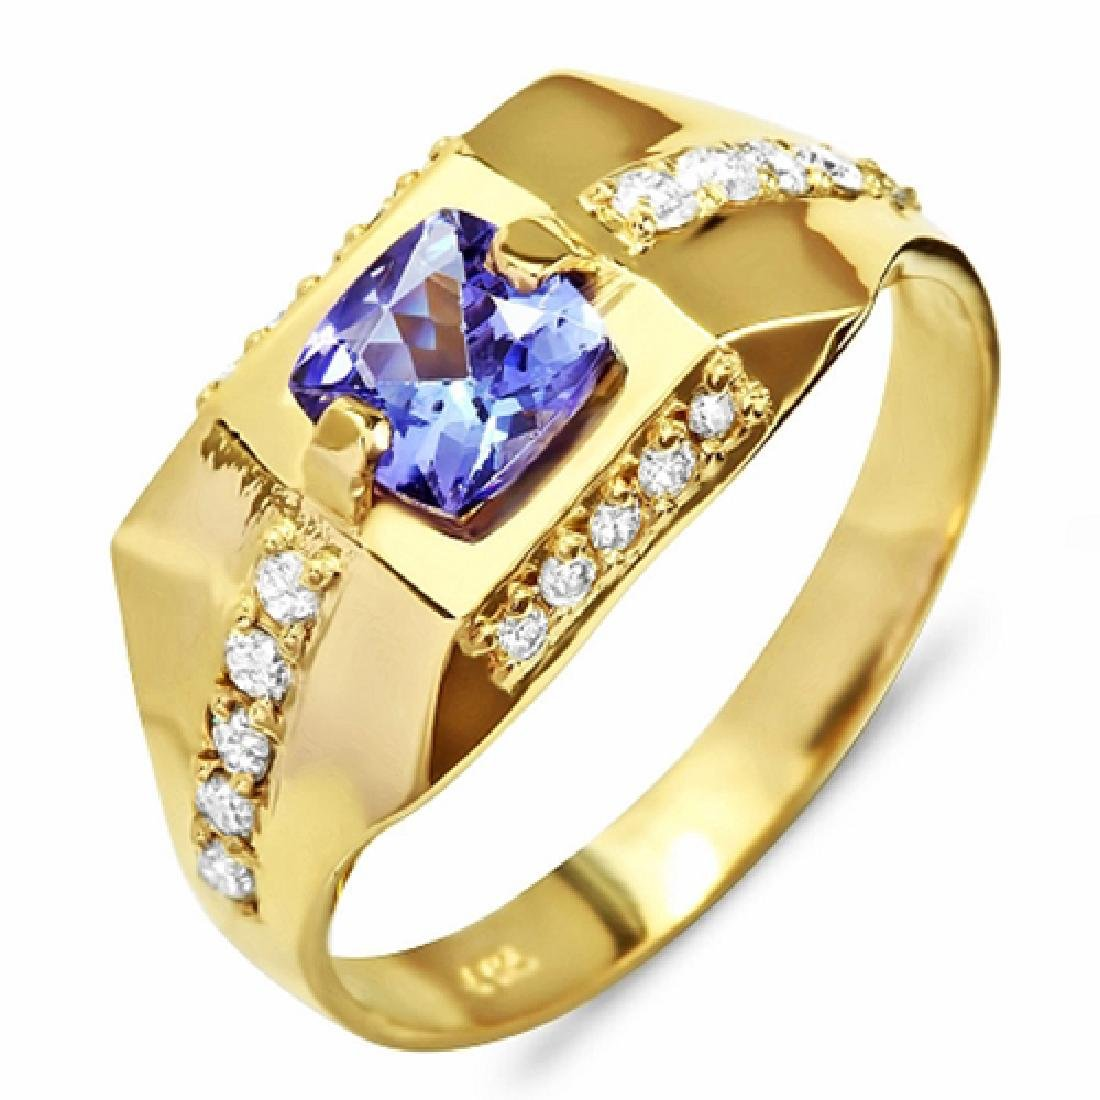 1.62 Carat Natural Tanzanite 18K Solid Yellow Gold